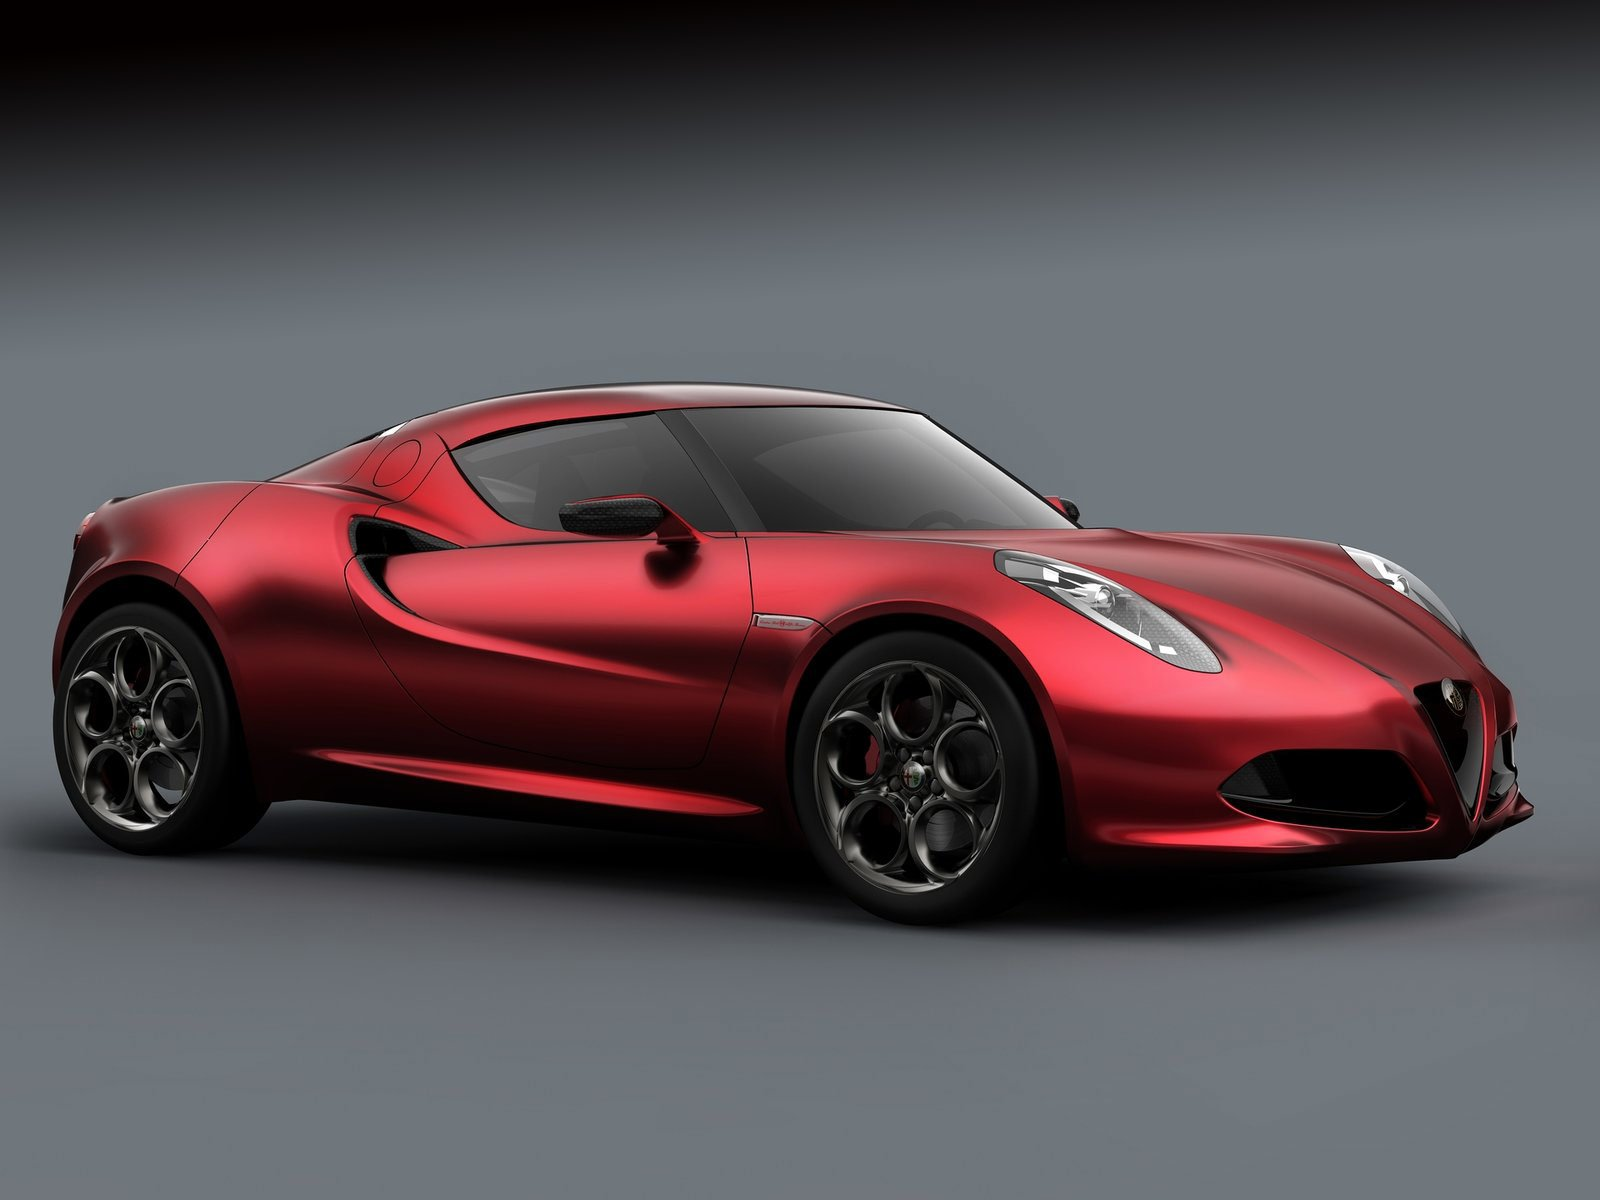 Latest 2011 Alfa Romeo 4C Concept Car Desktop Wallpapers Free Download